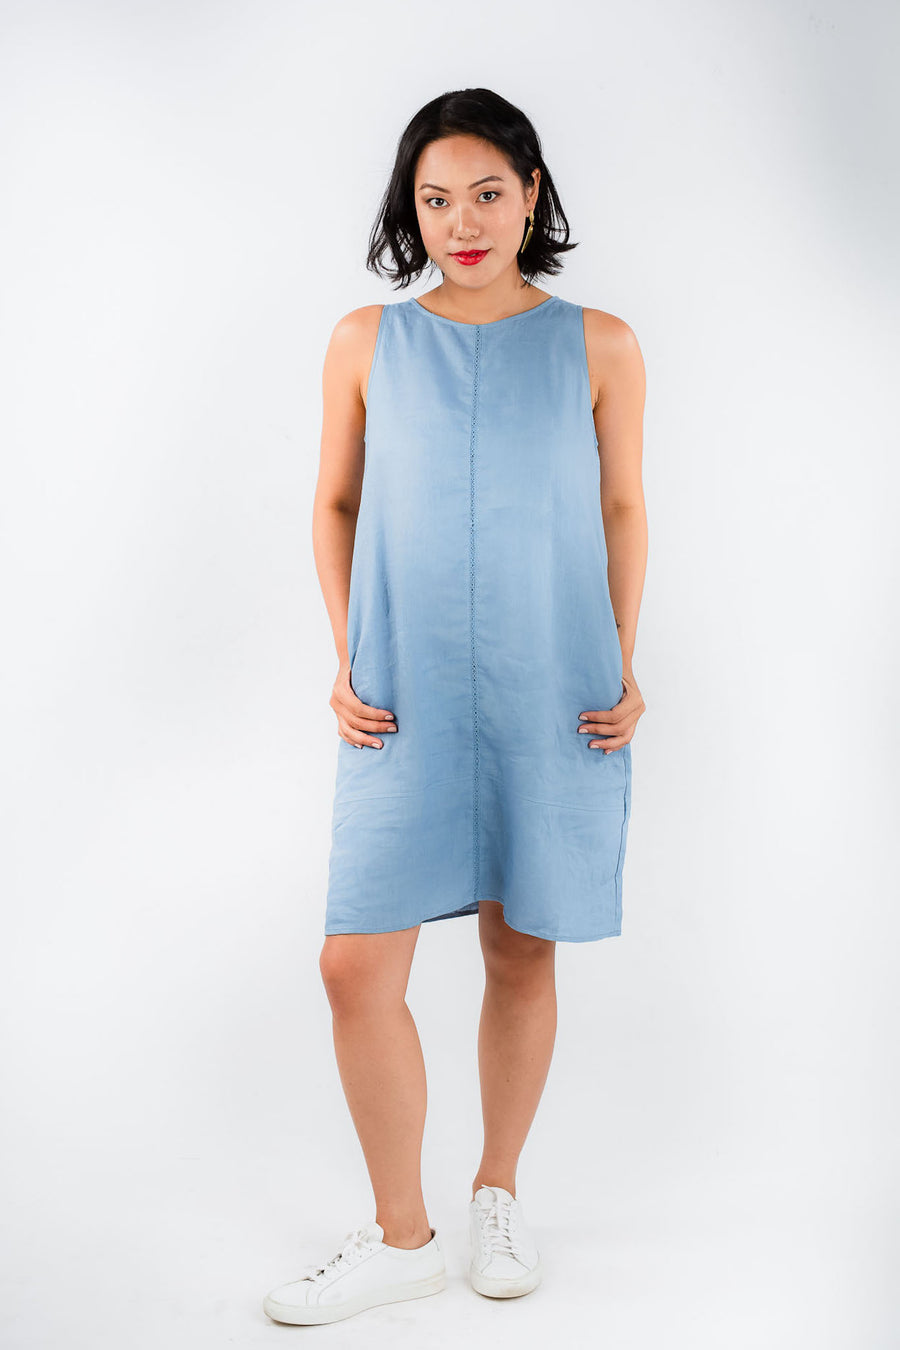 Model wears Zhai Blue Linen A-Line dress, available on sustainable fashion store ZERRIN